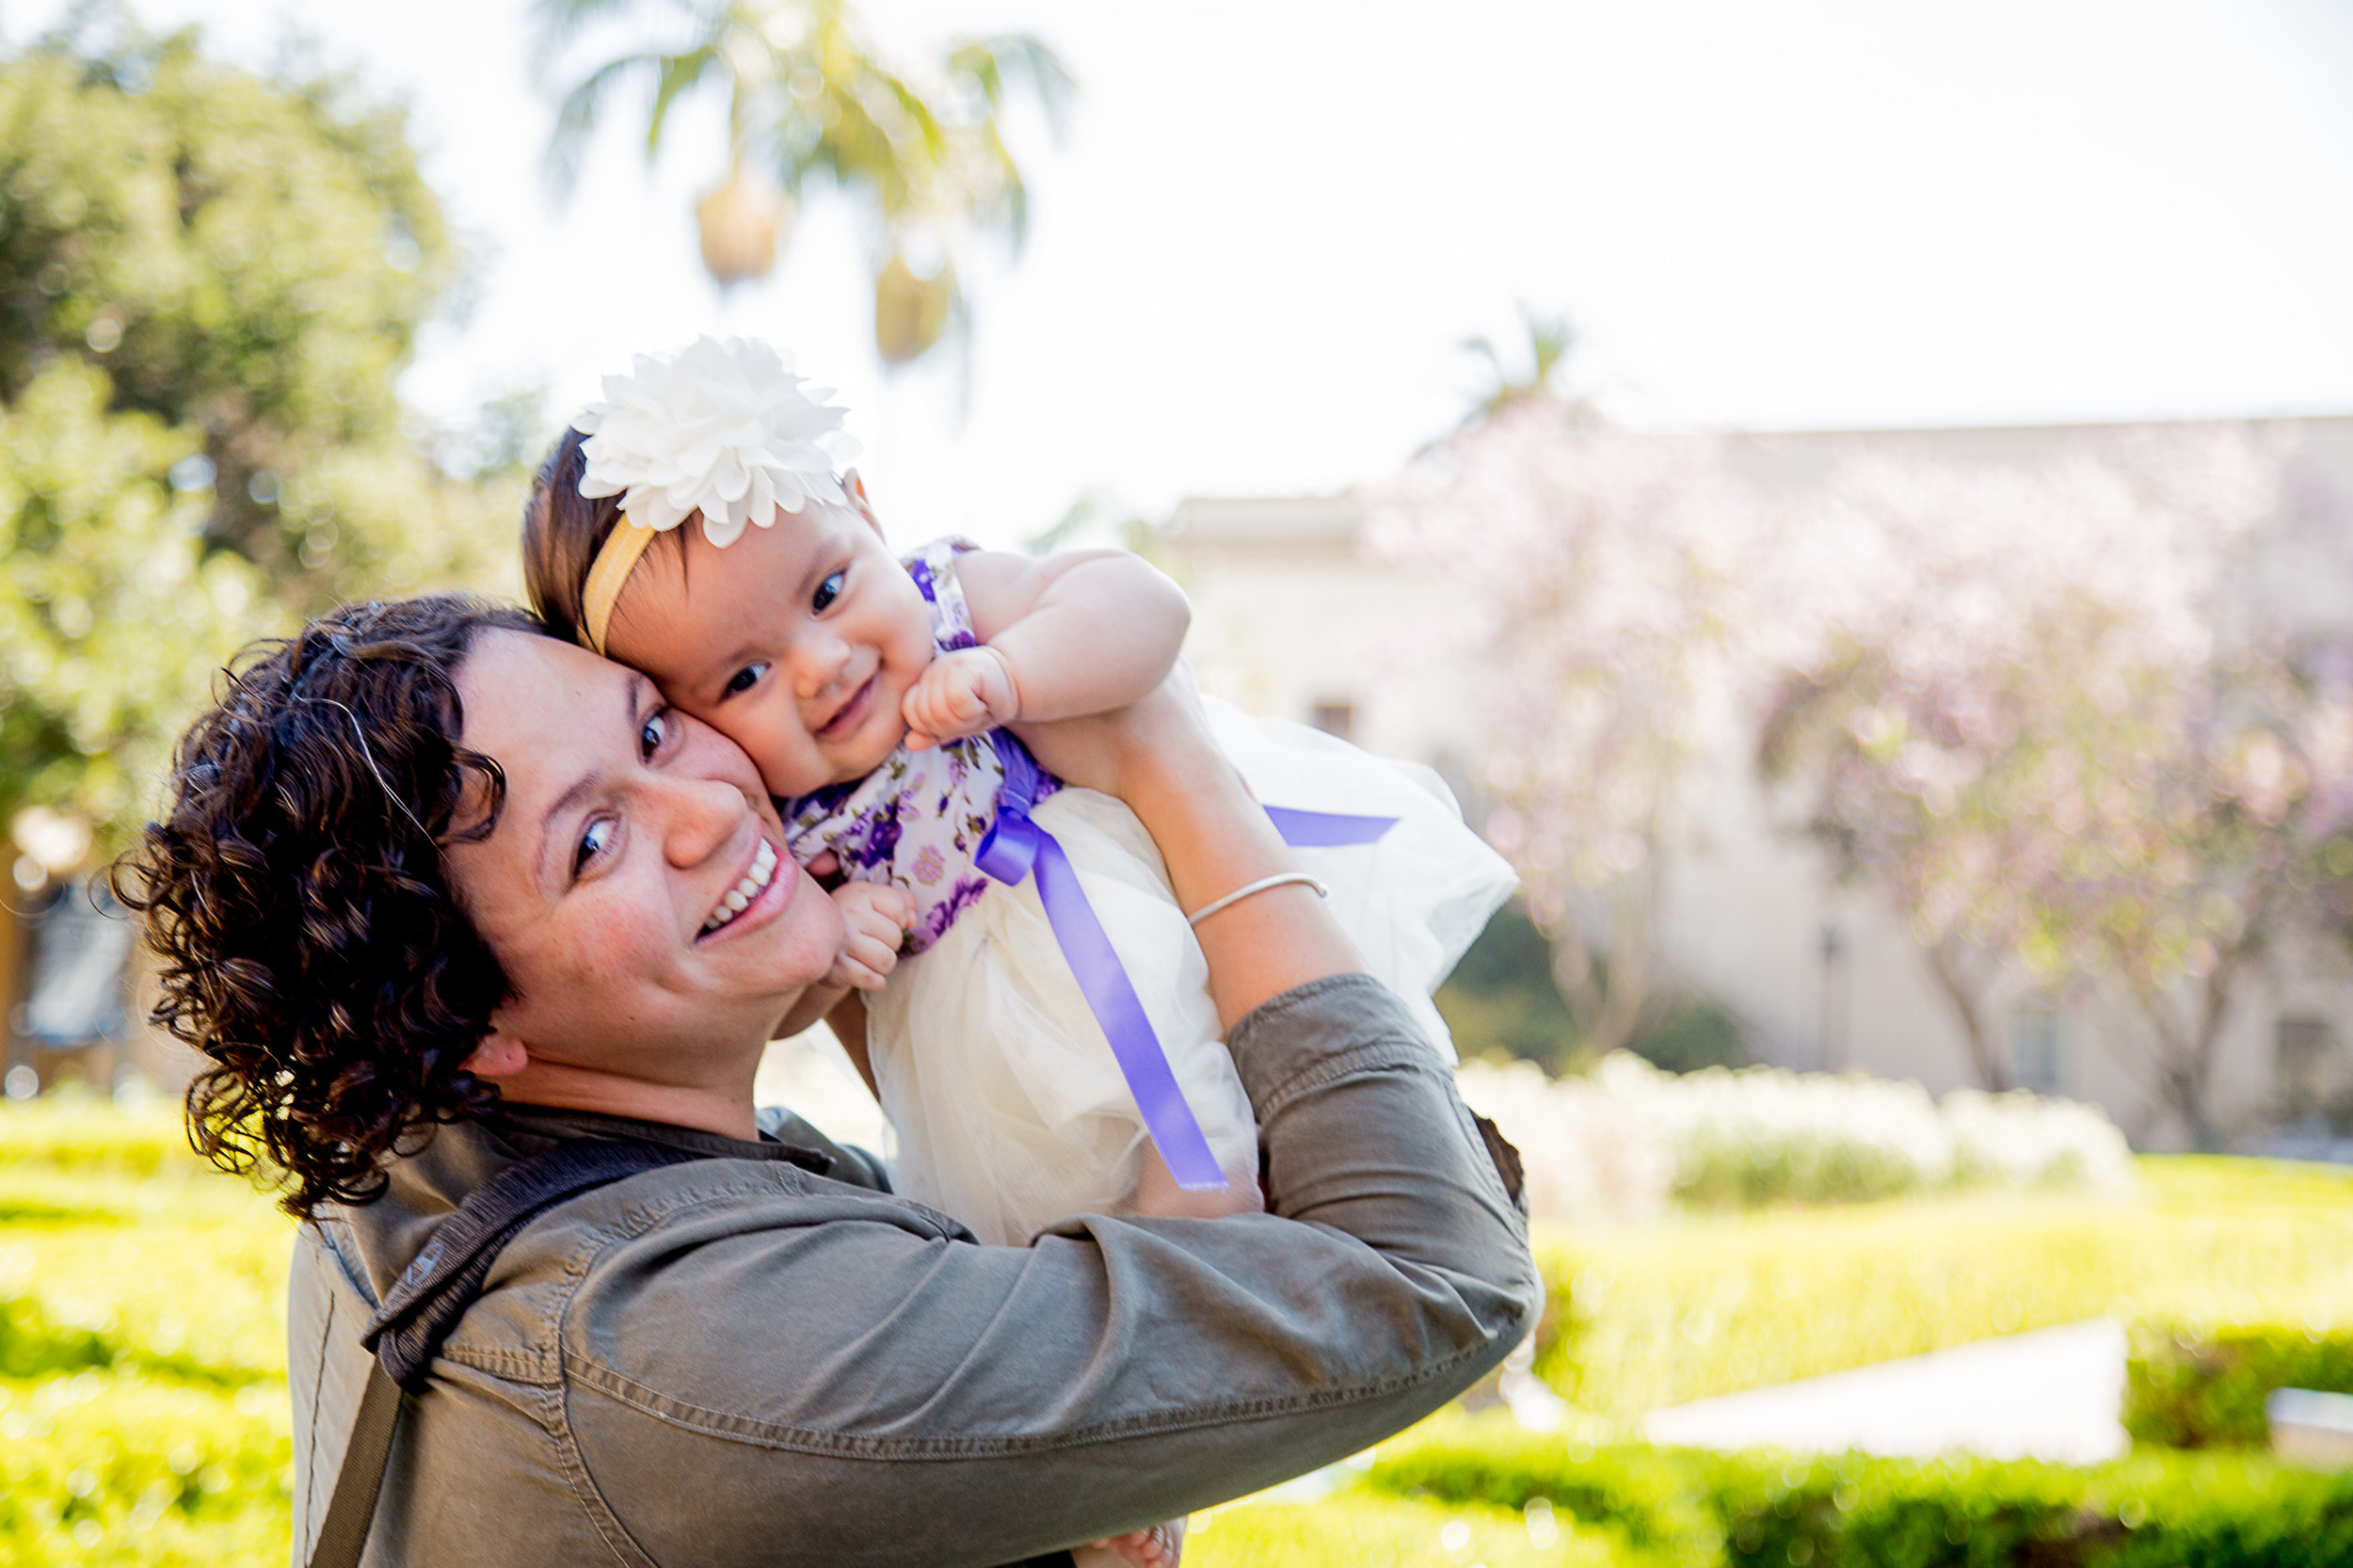 mommy-and-me-balboa-park-wild-flowers-spring (89 of 136).jpg